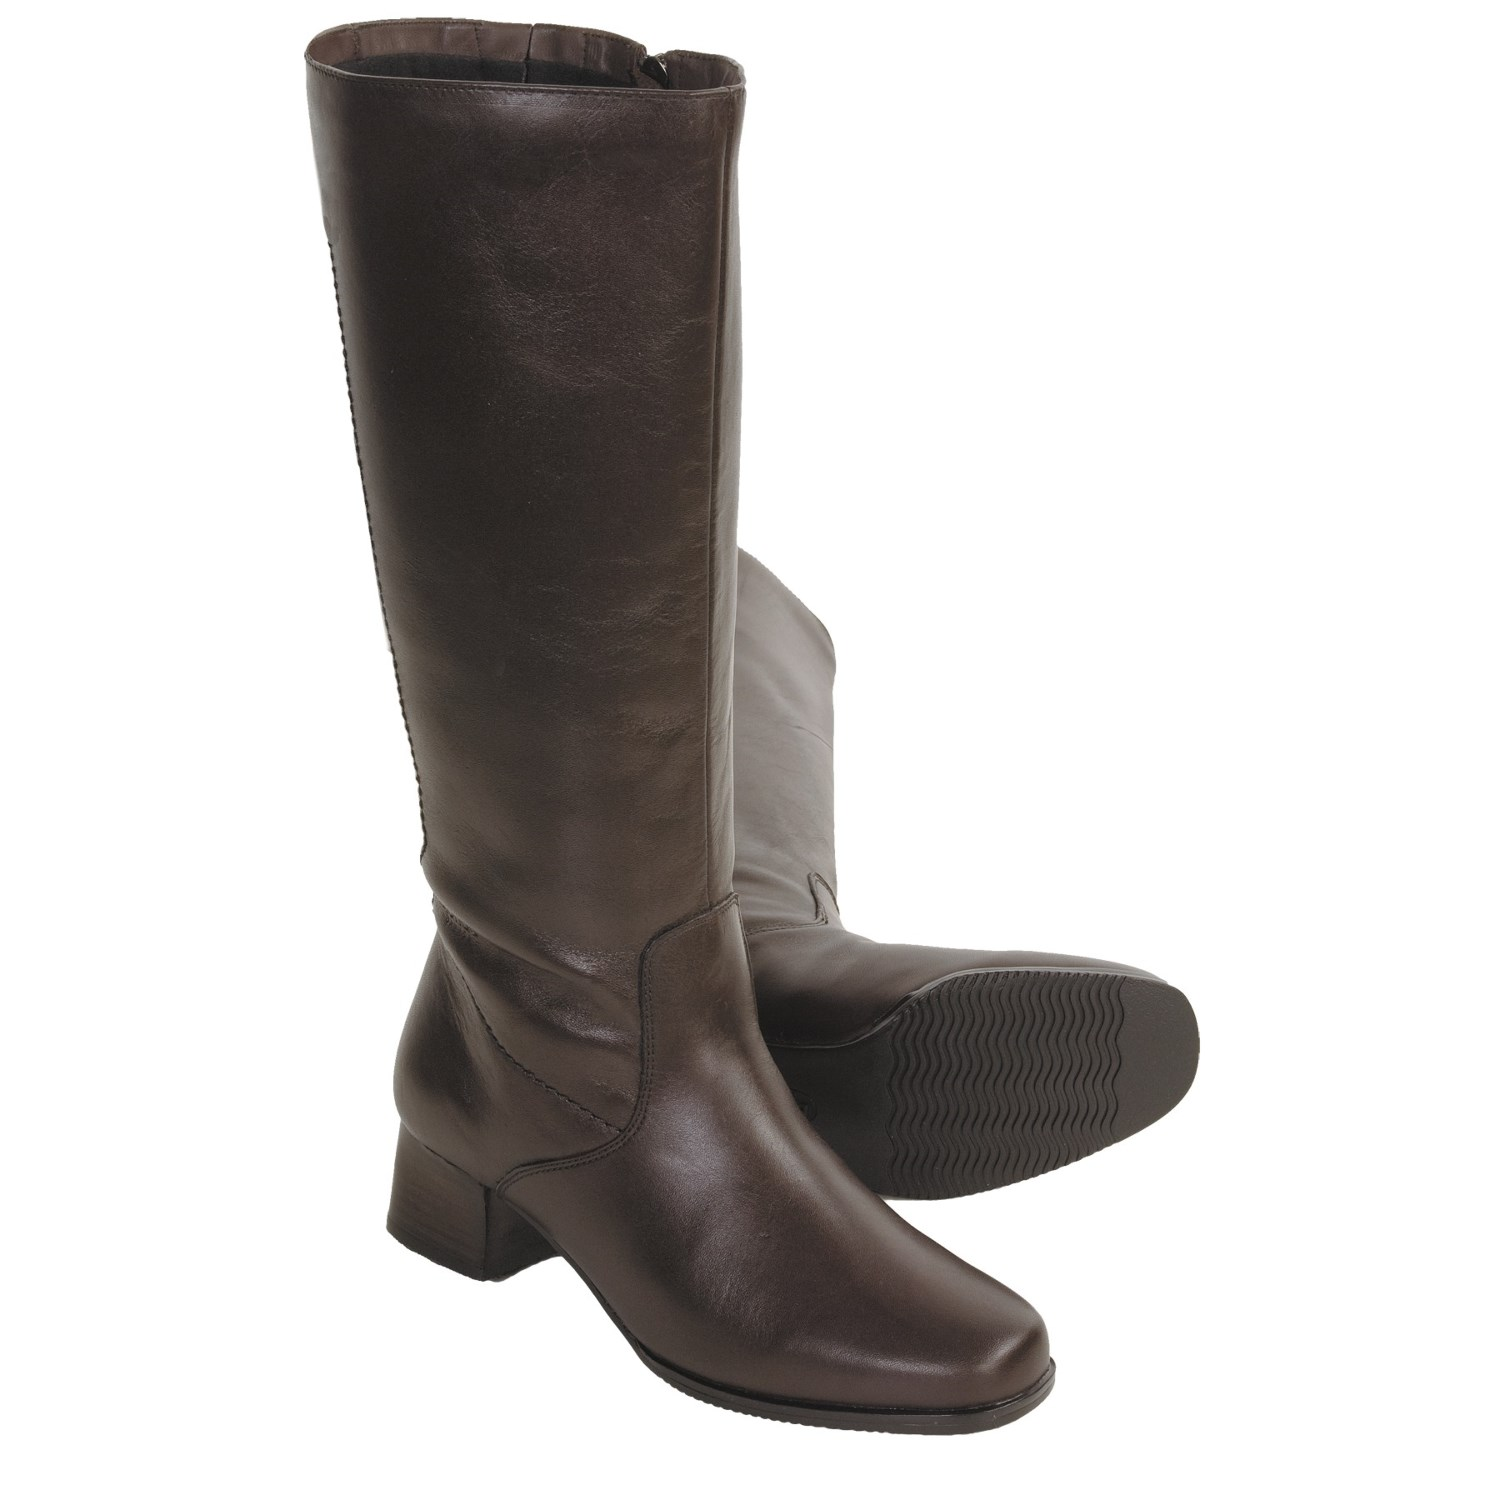 blondo doncaster leather boots suede lining for